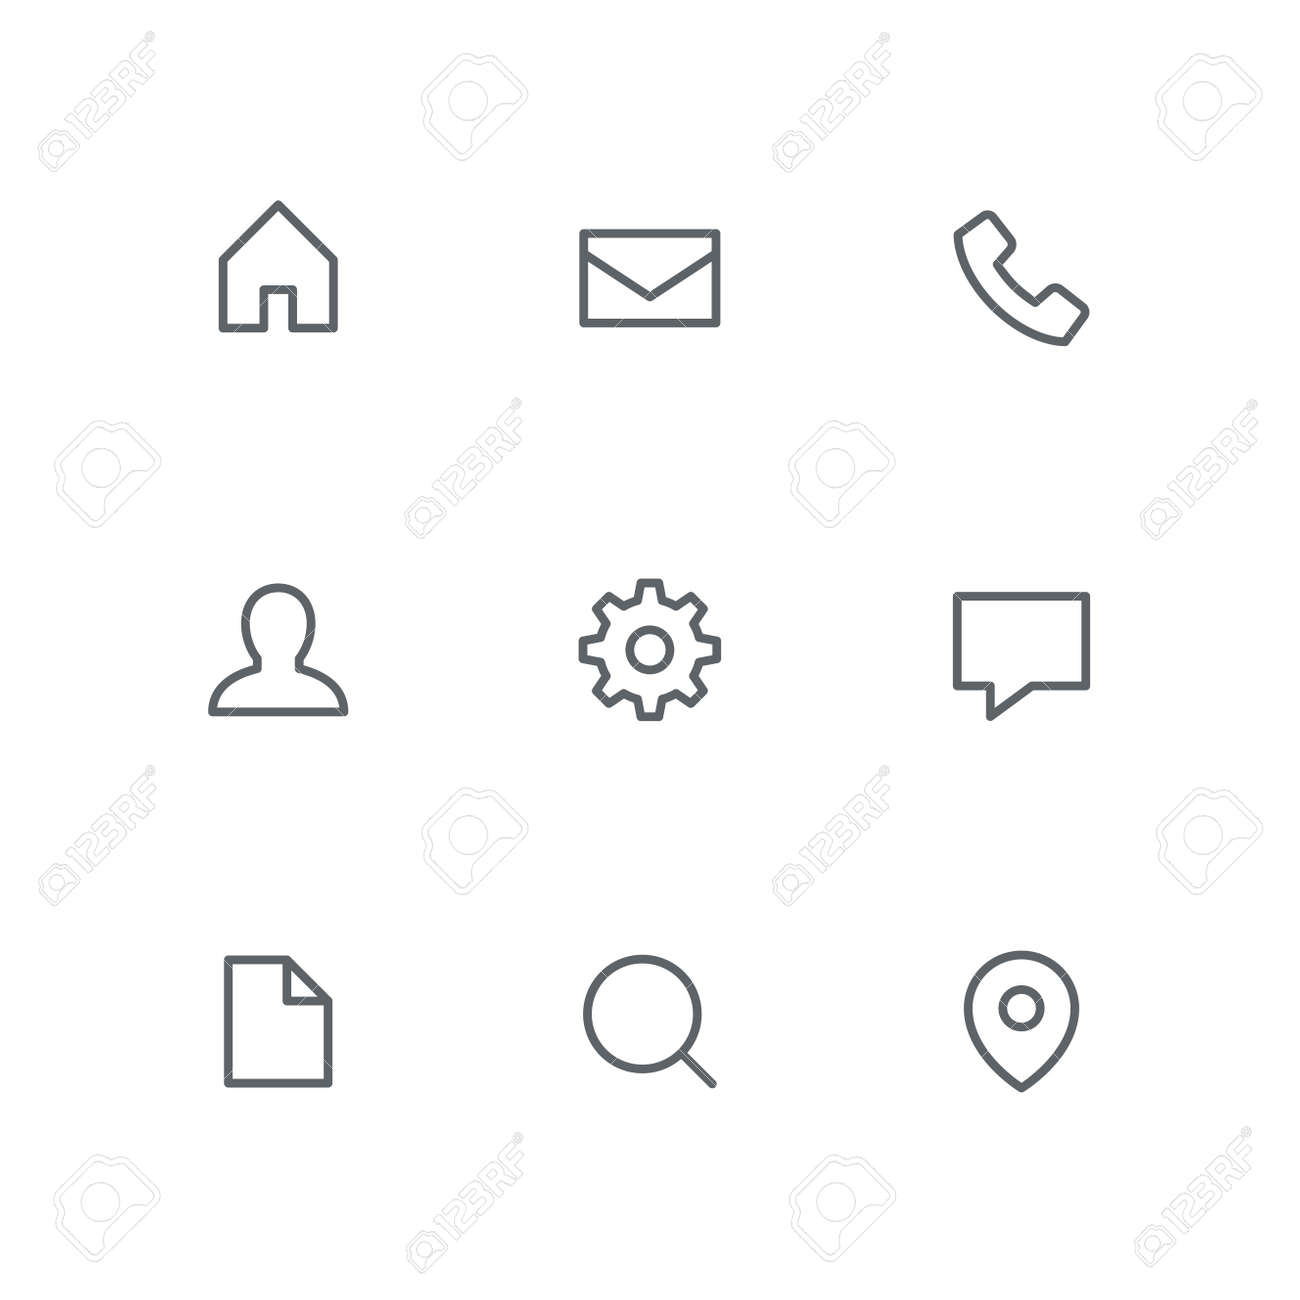 Basic outline icon set - home, mail, telephone, person, gear